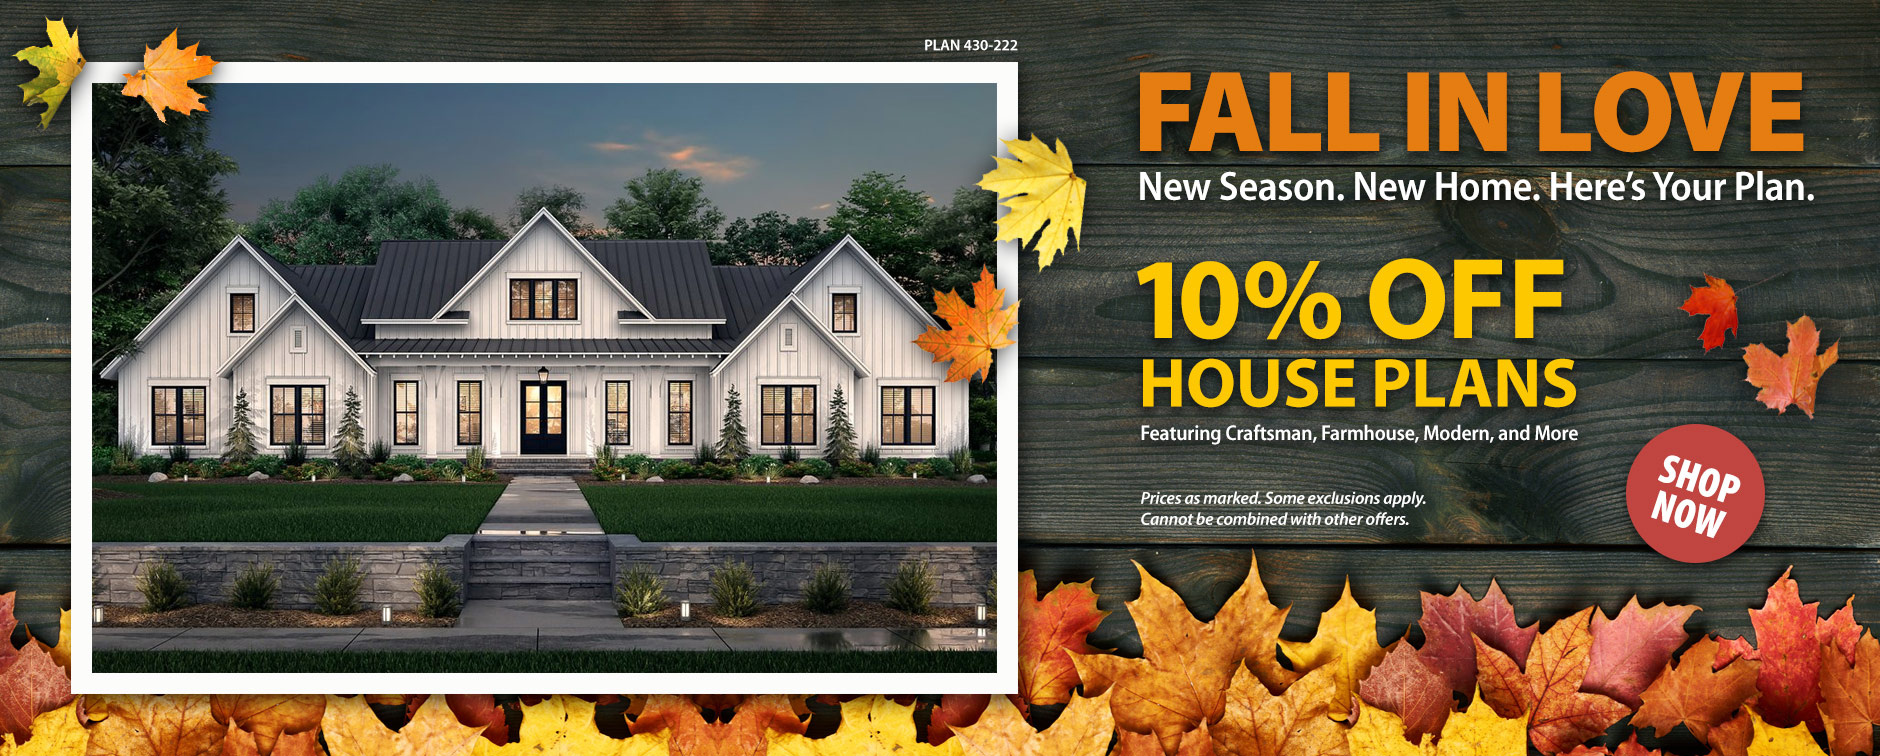 Take 10% Off House Plans Today